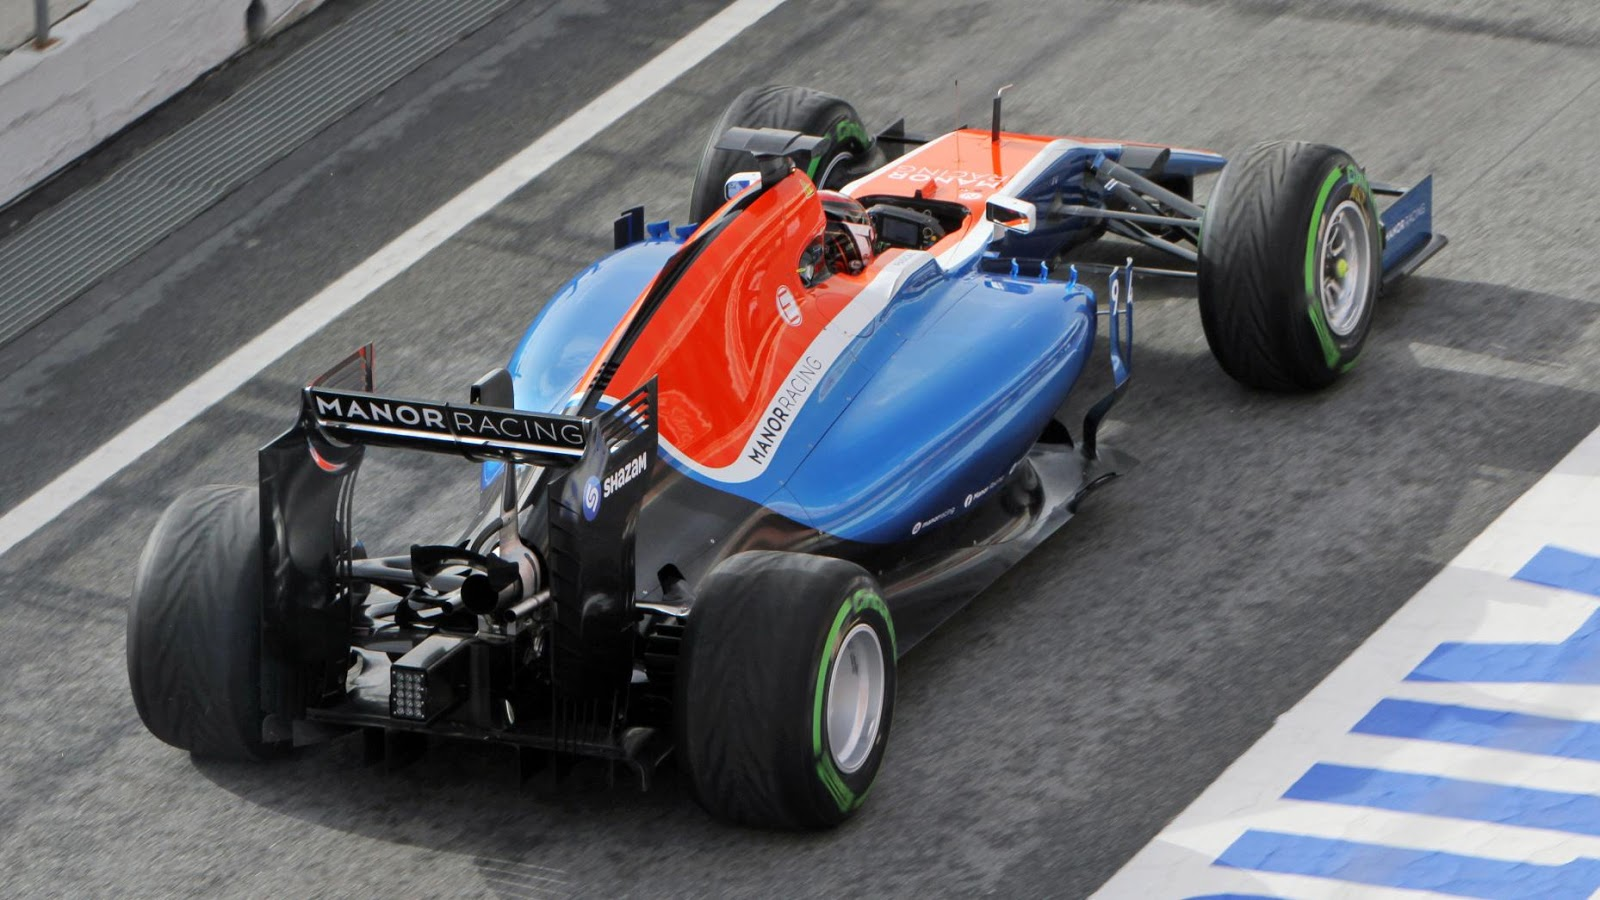 Manor Racing – MRT05